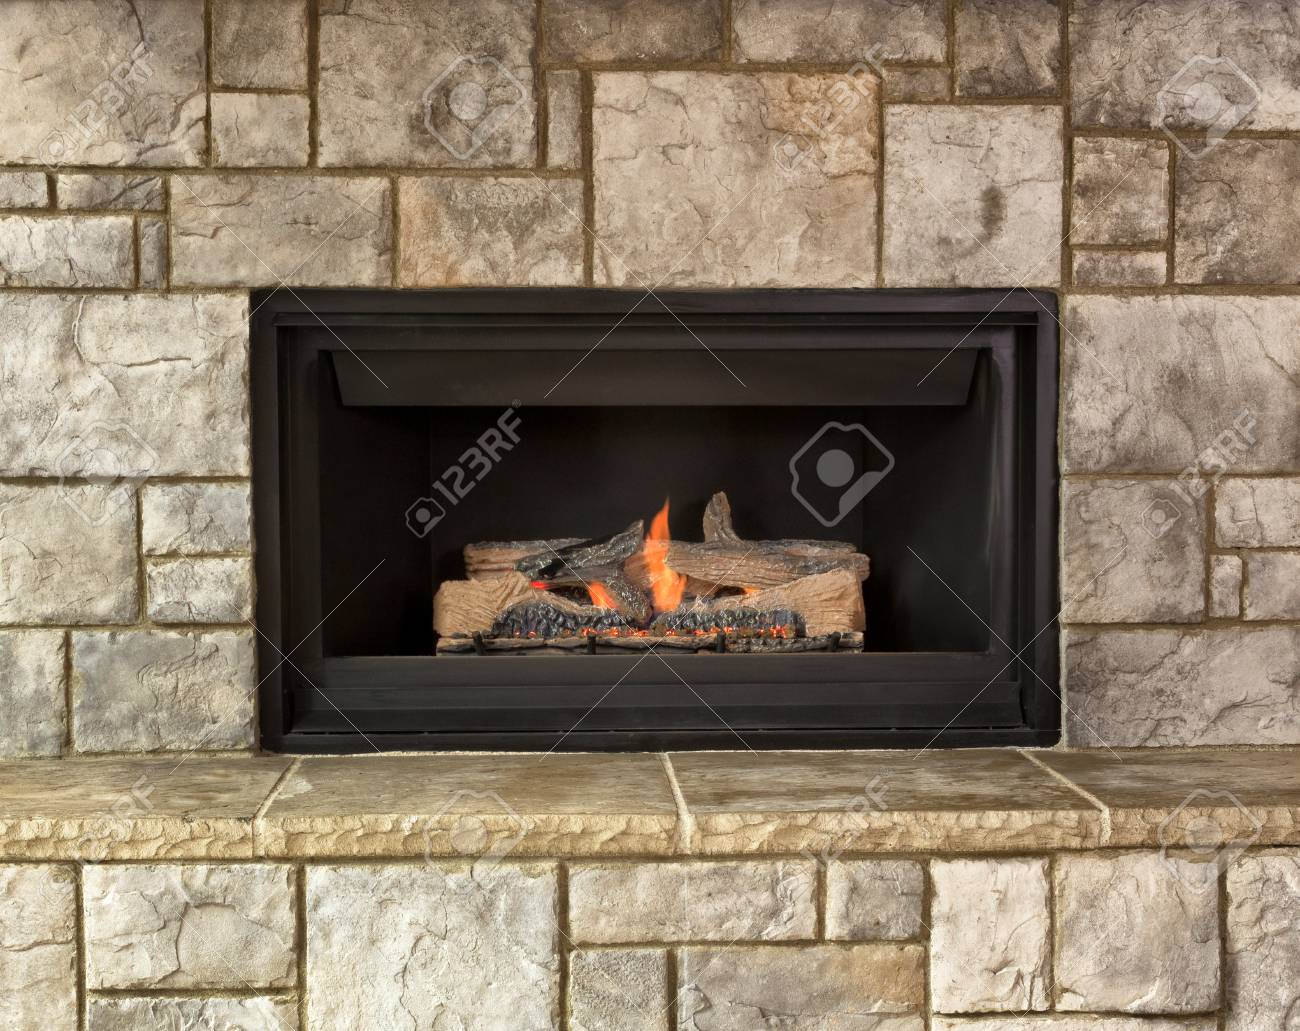 Burning natural gas fireplace surround by stone - 64479994